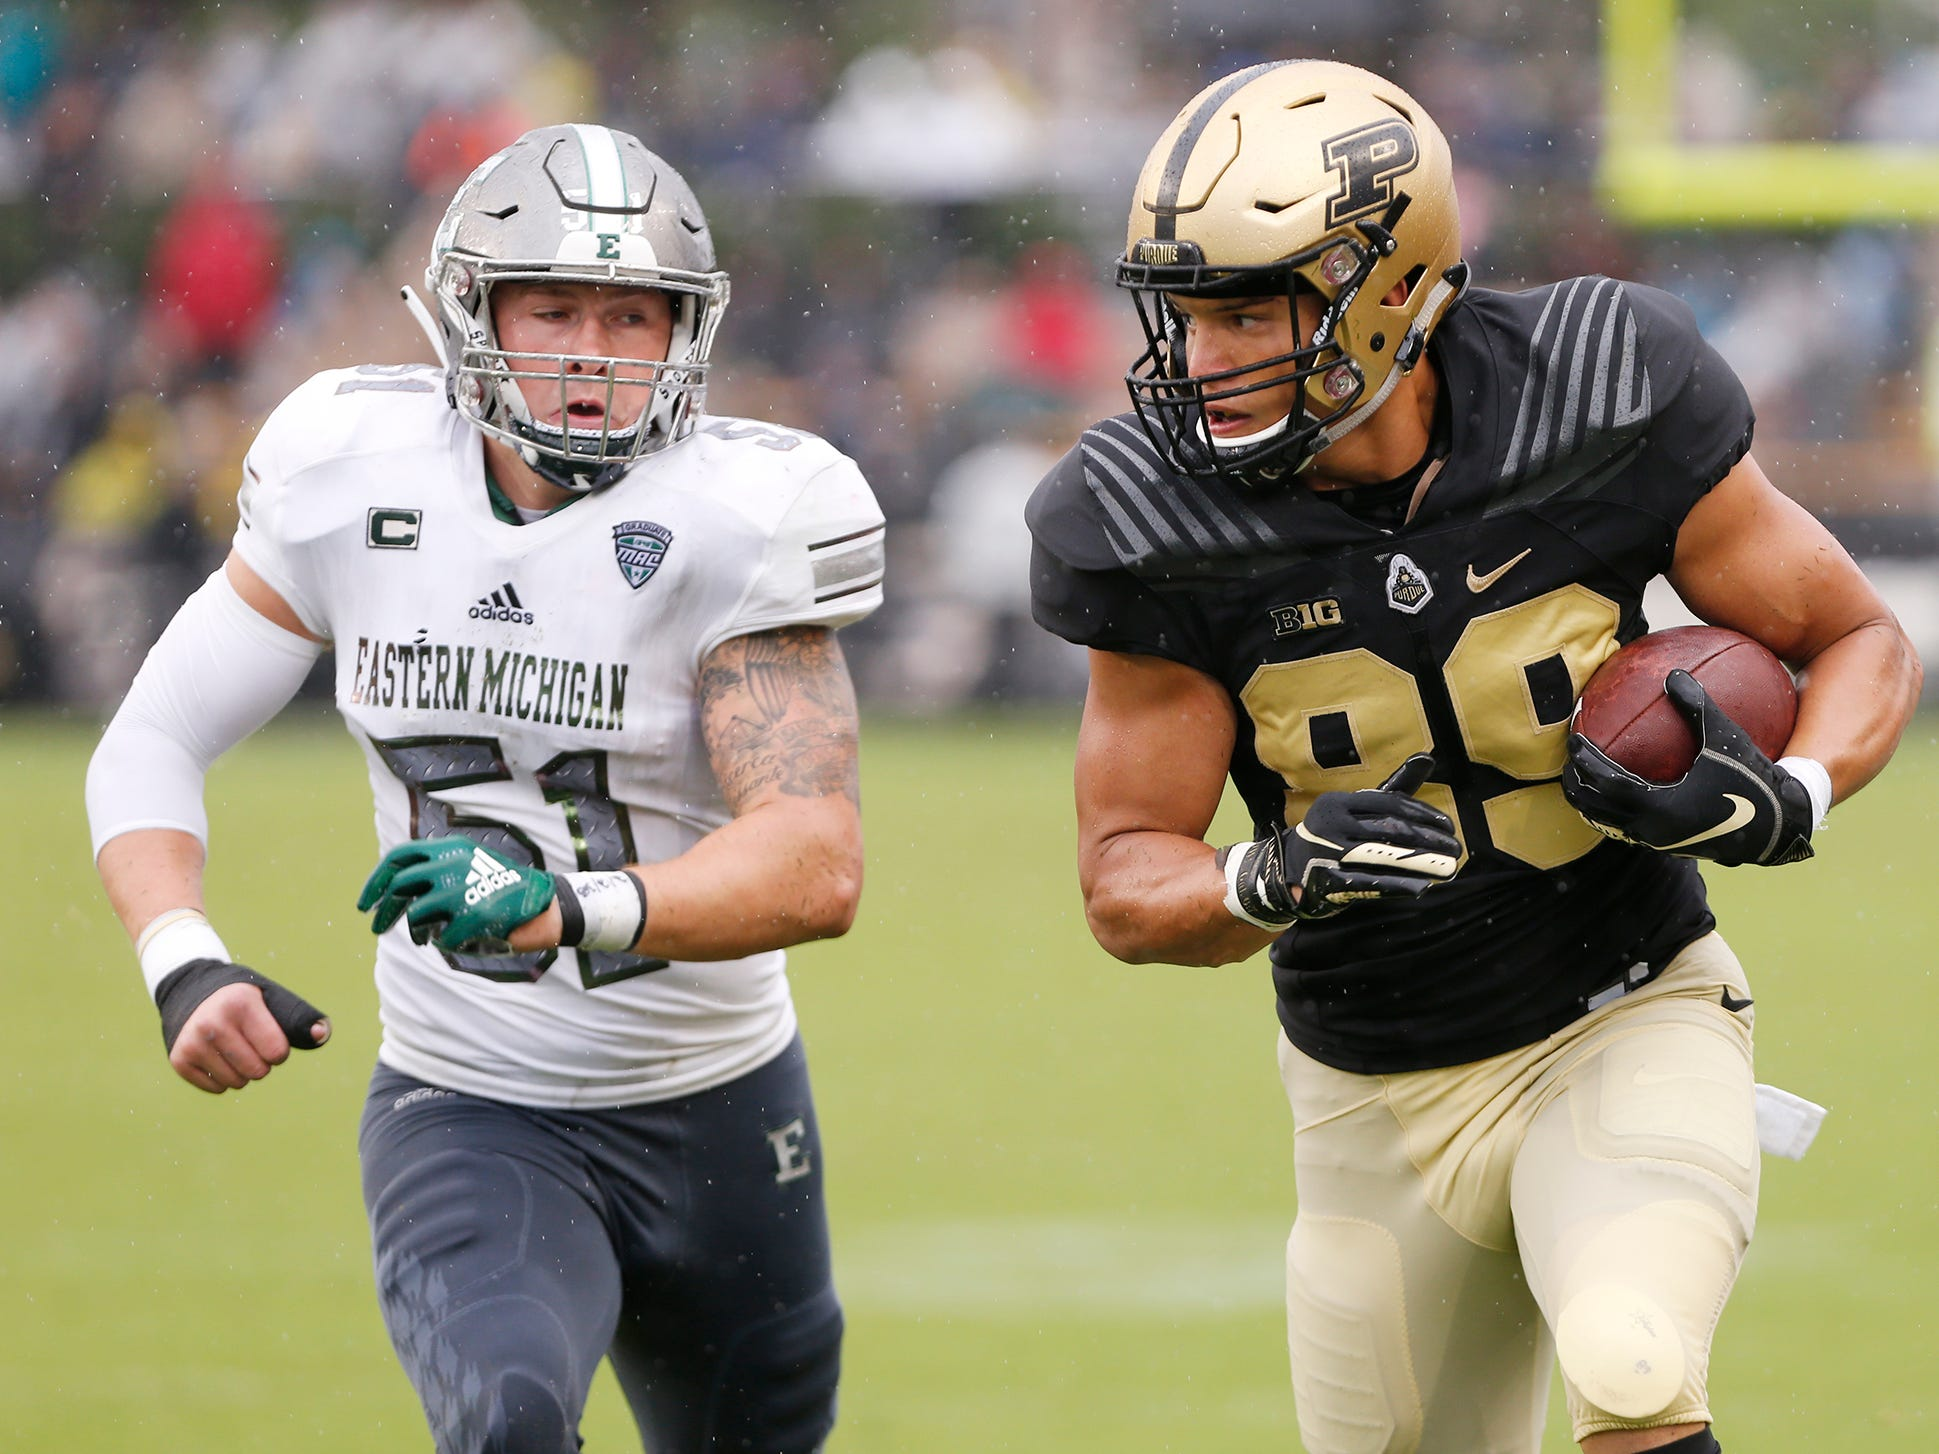 Purdue tight end Brycen Hopkins is chased by Kyle Rachwal of Eastern Michigan after a pass reception in the first half Saturday, September 8, 2018, in West Lafayette. Purdue fell to Eastern Michigan 20-19.